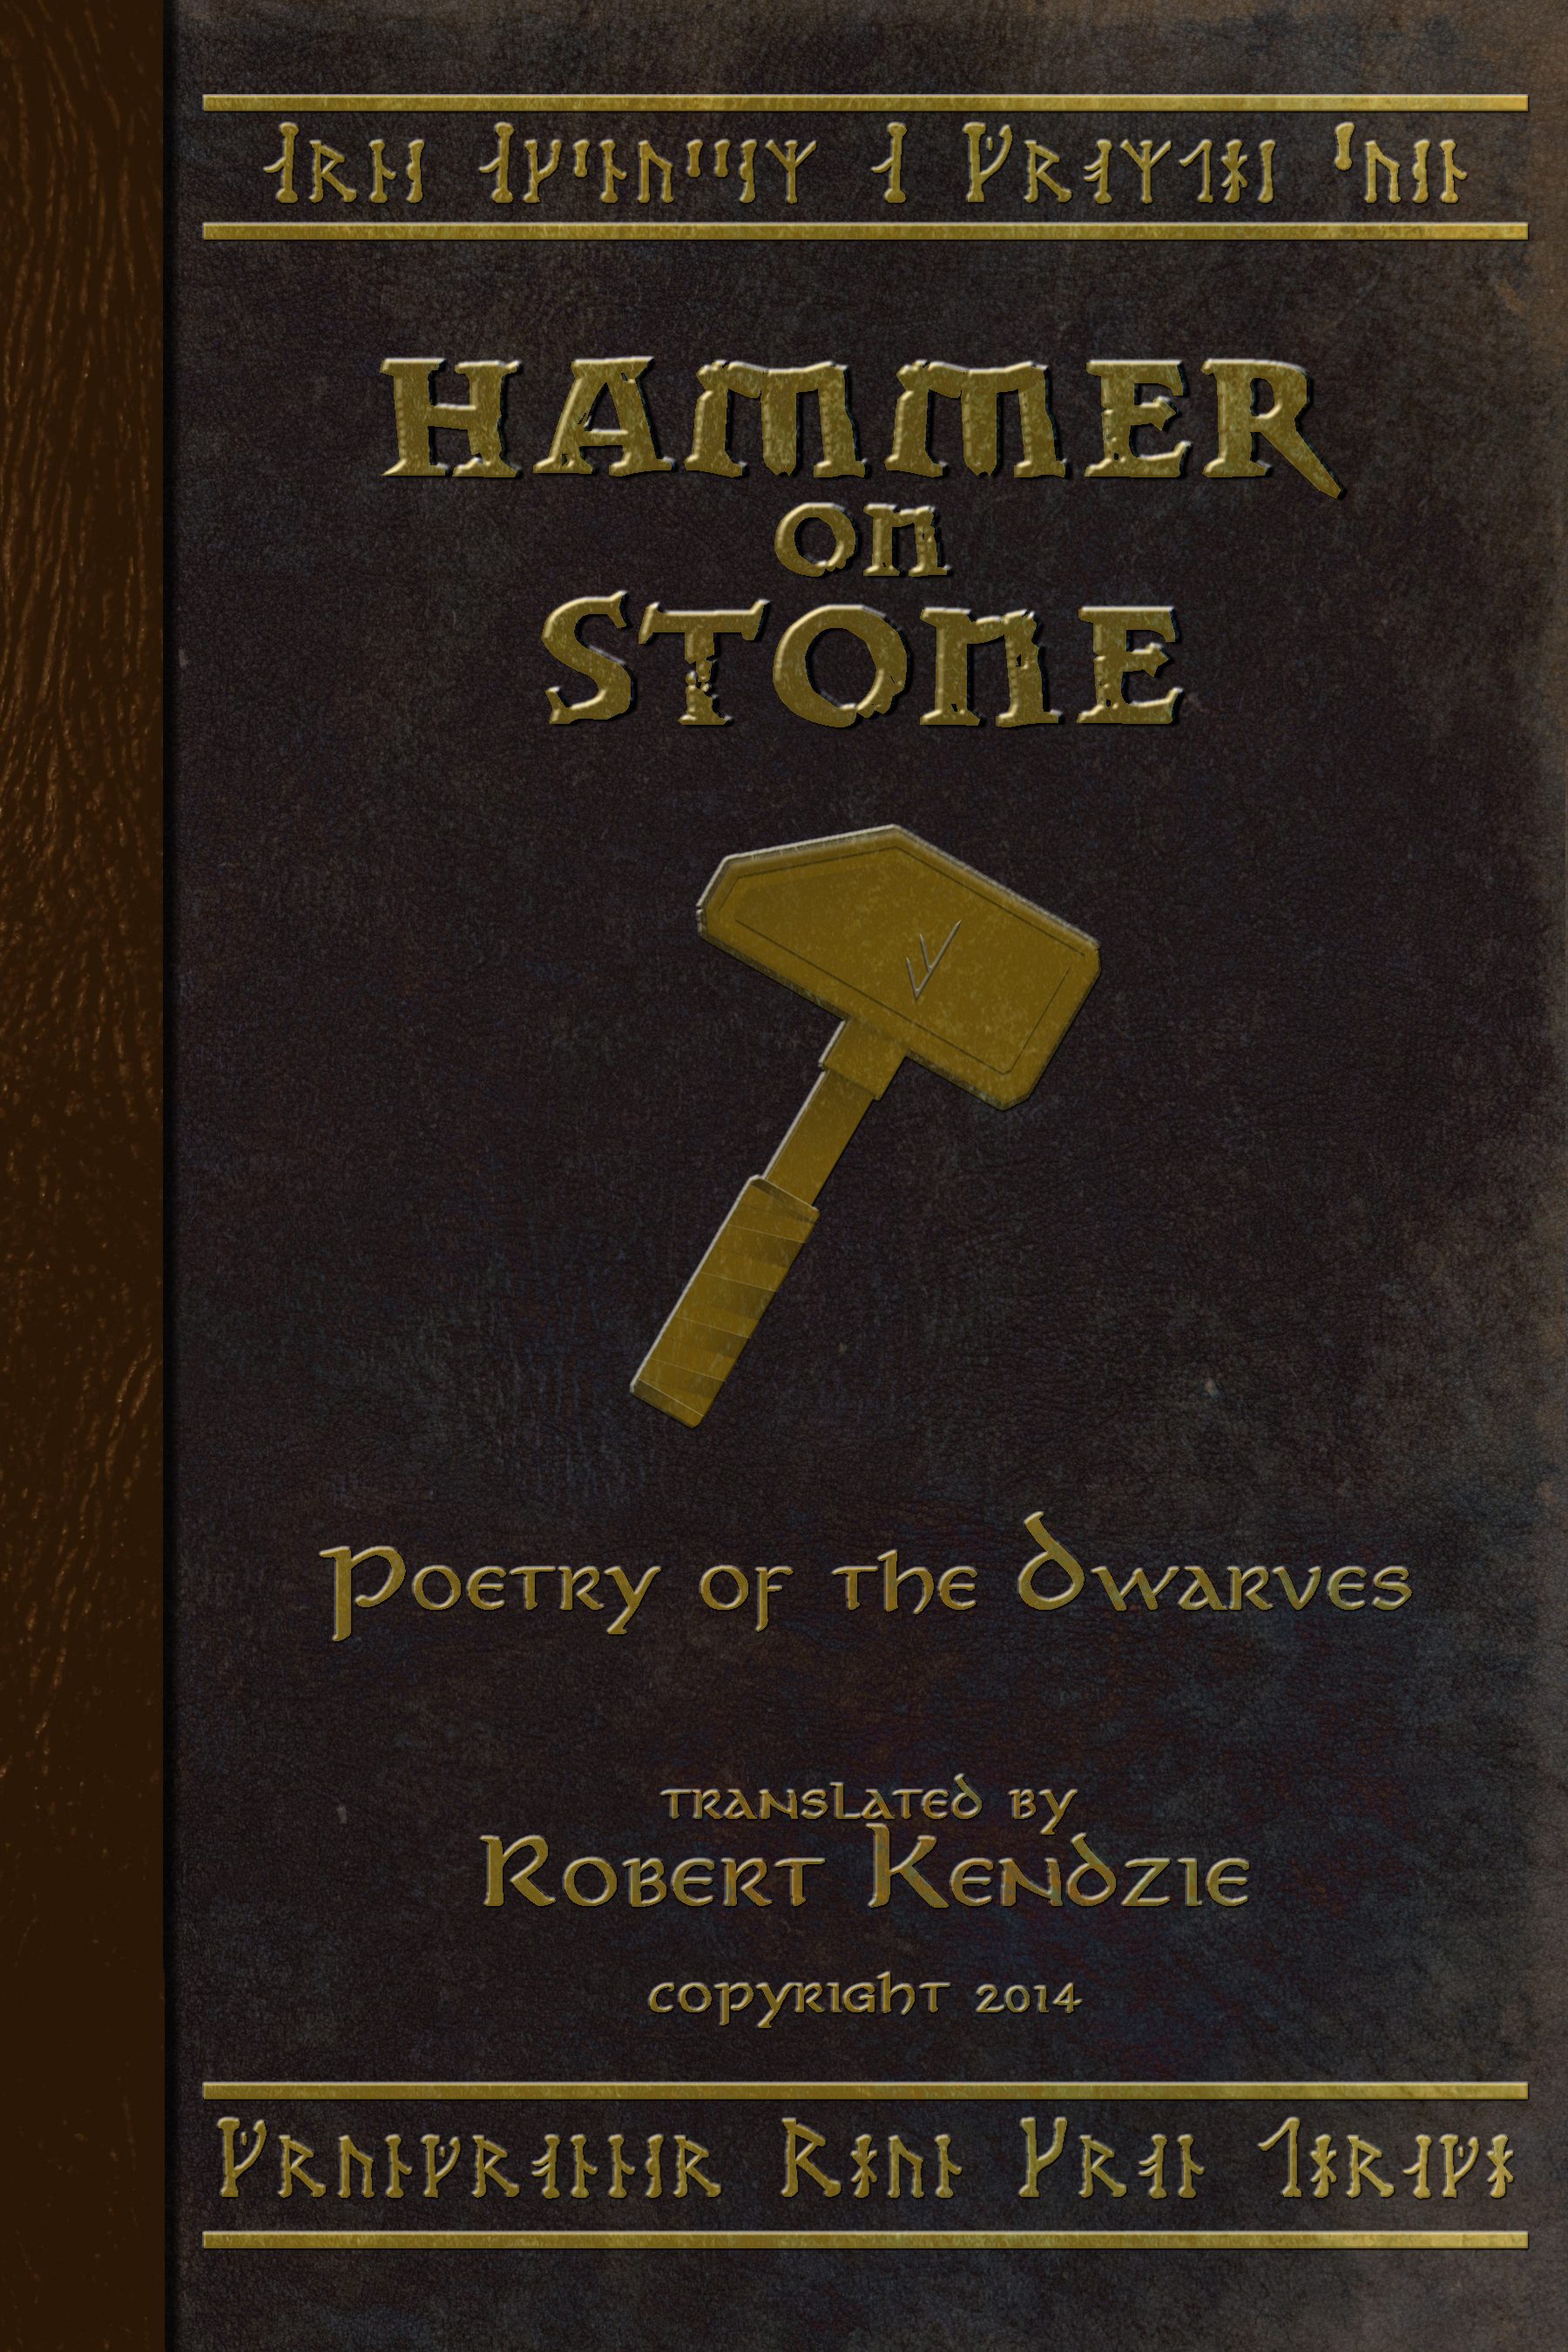 Hammer on Stone Poetry of the Dwarves - Arne Aksnussem was one of the greatest dwarven skalds of his era, and his verse reflects the proud, stern traditions of his culture and time. Now you can enjoy his most famous works in this new English translation, compiled from the few remaining original sources and presented in an easy to digest format. Gather around the hearth, raise a mug of fine mead, and revel in the joys and trials of the Dwarven people as sung by their master wordsmith. Copyright 2016, black & white, 40 pages. Interior art by Clay Kronke.